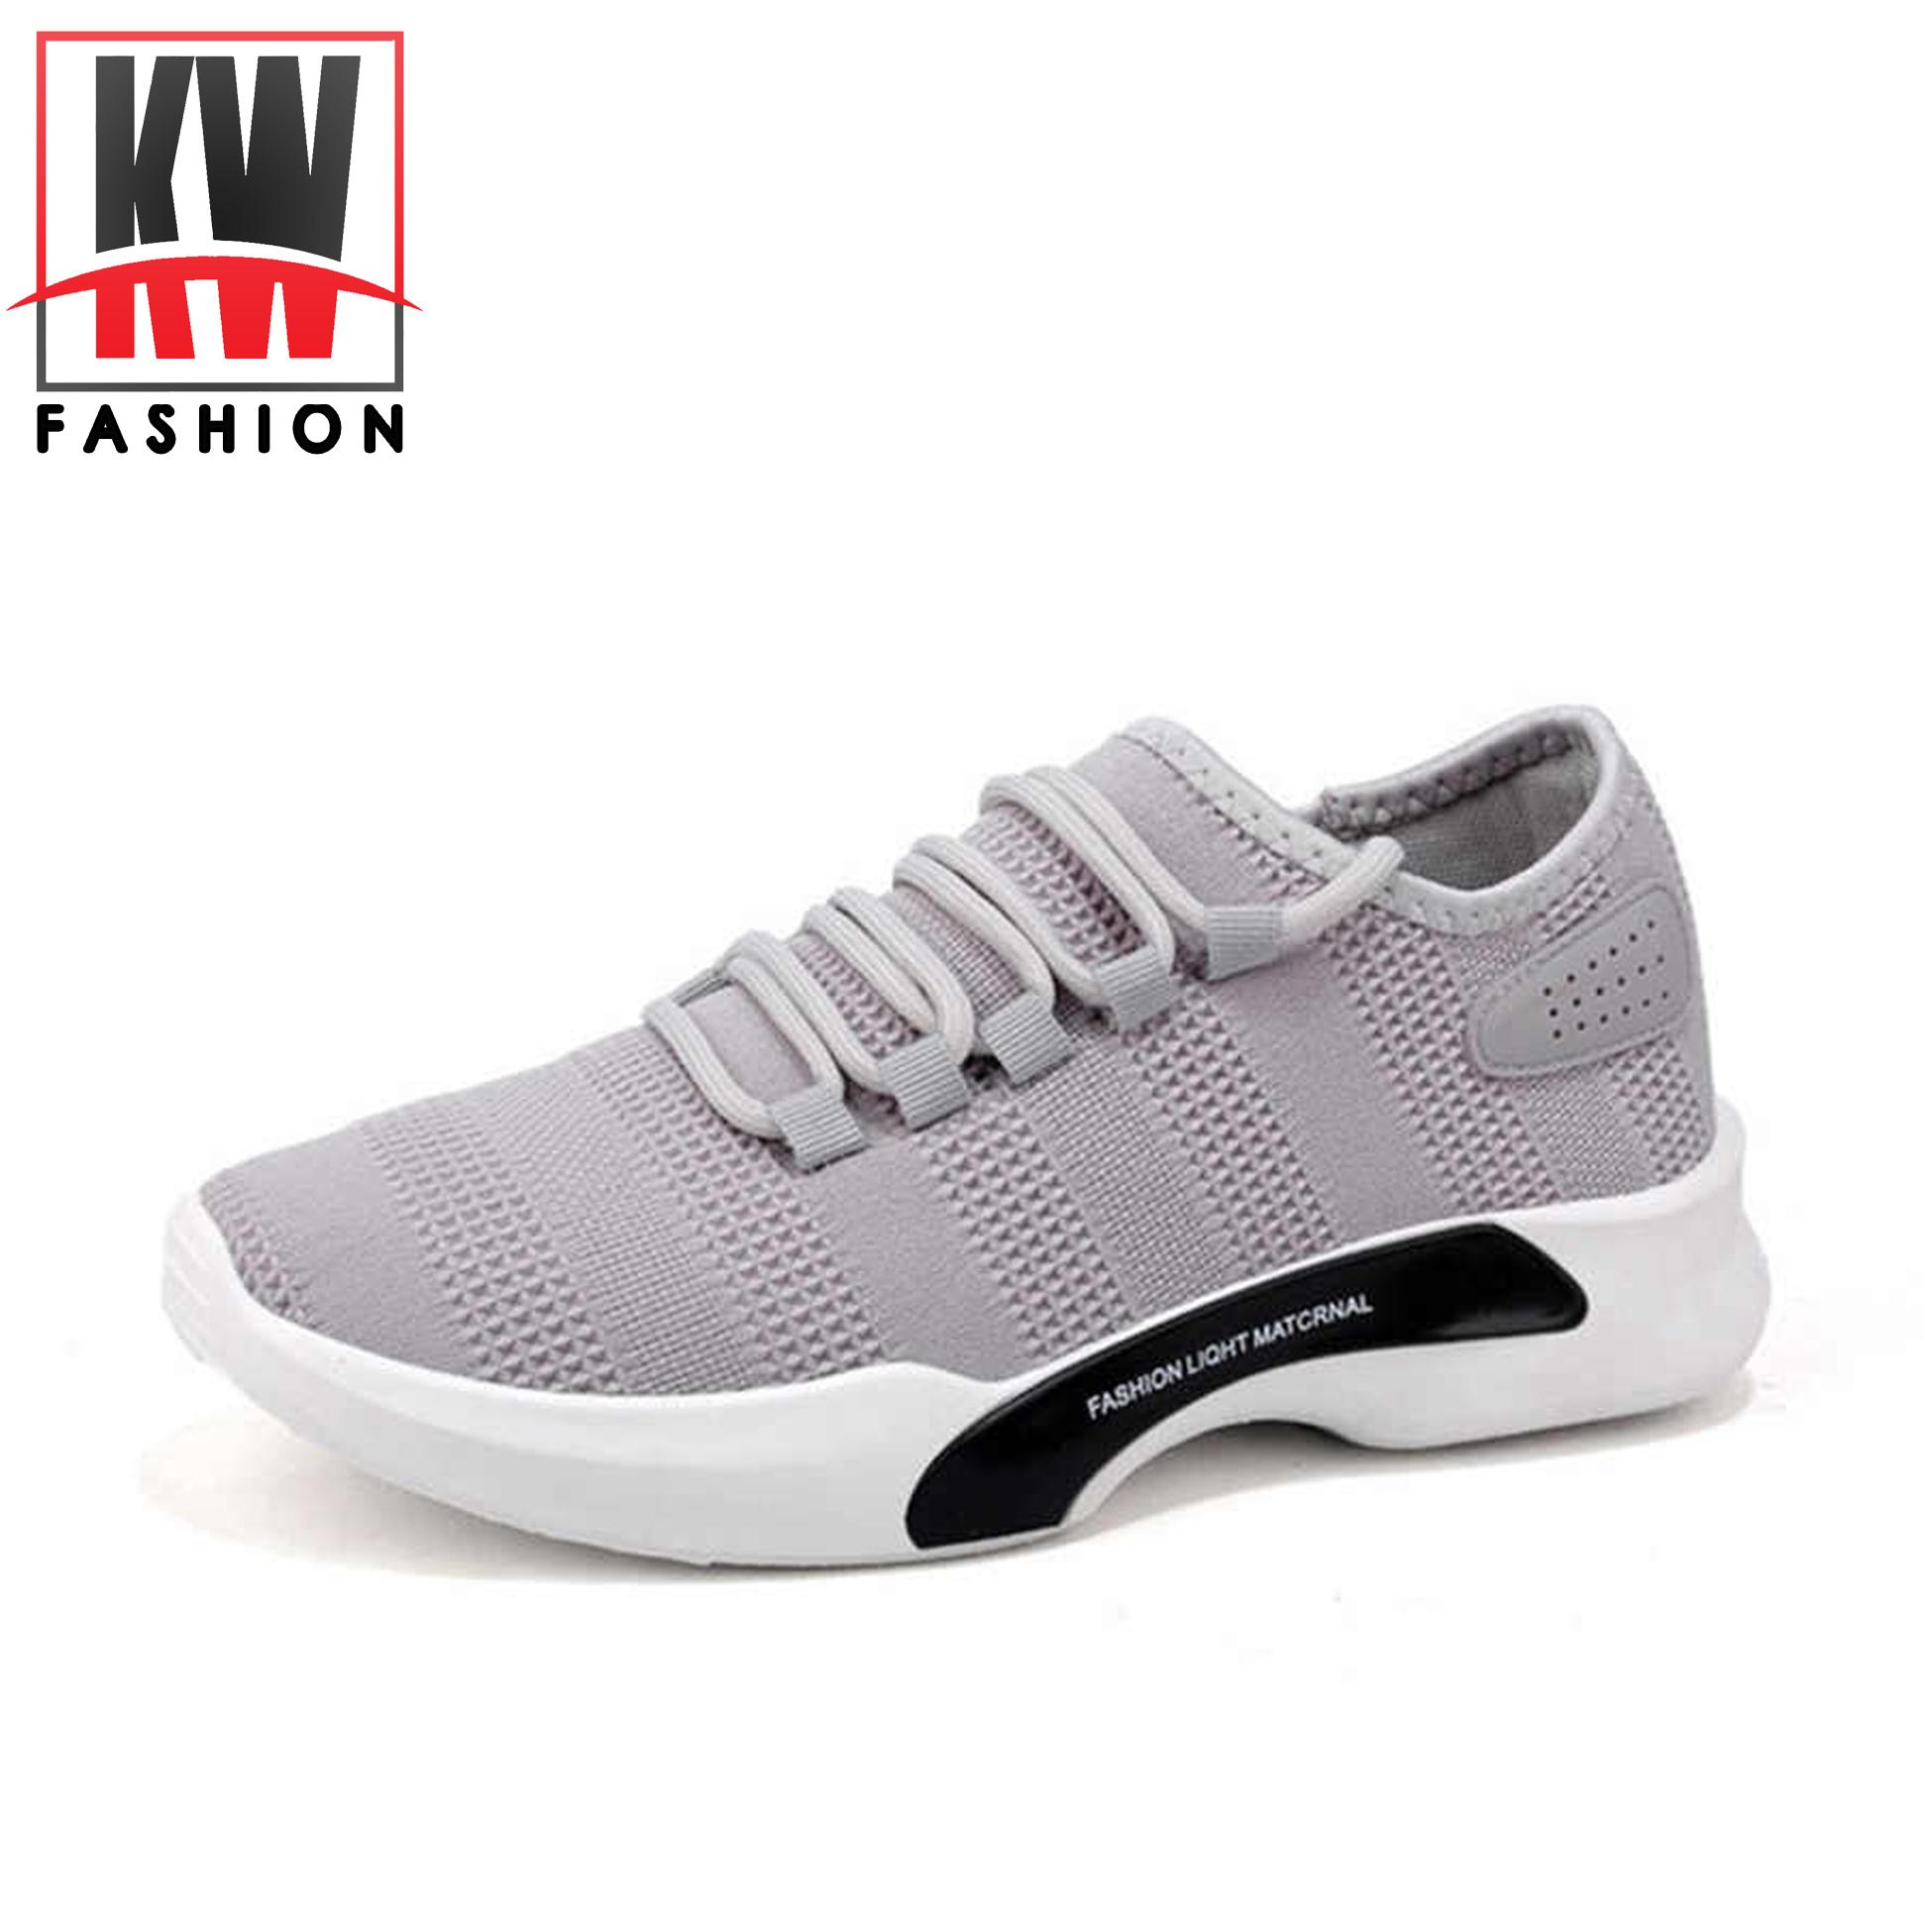 36b84c409f5b Shoes for Men for sale - Mens Fashion Shoes online brands